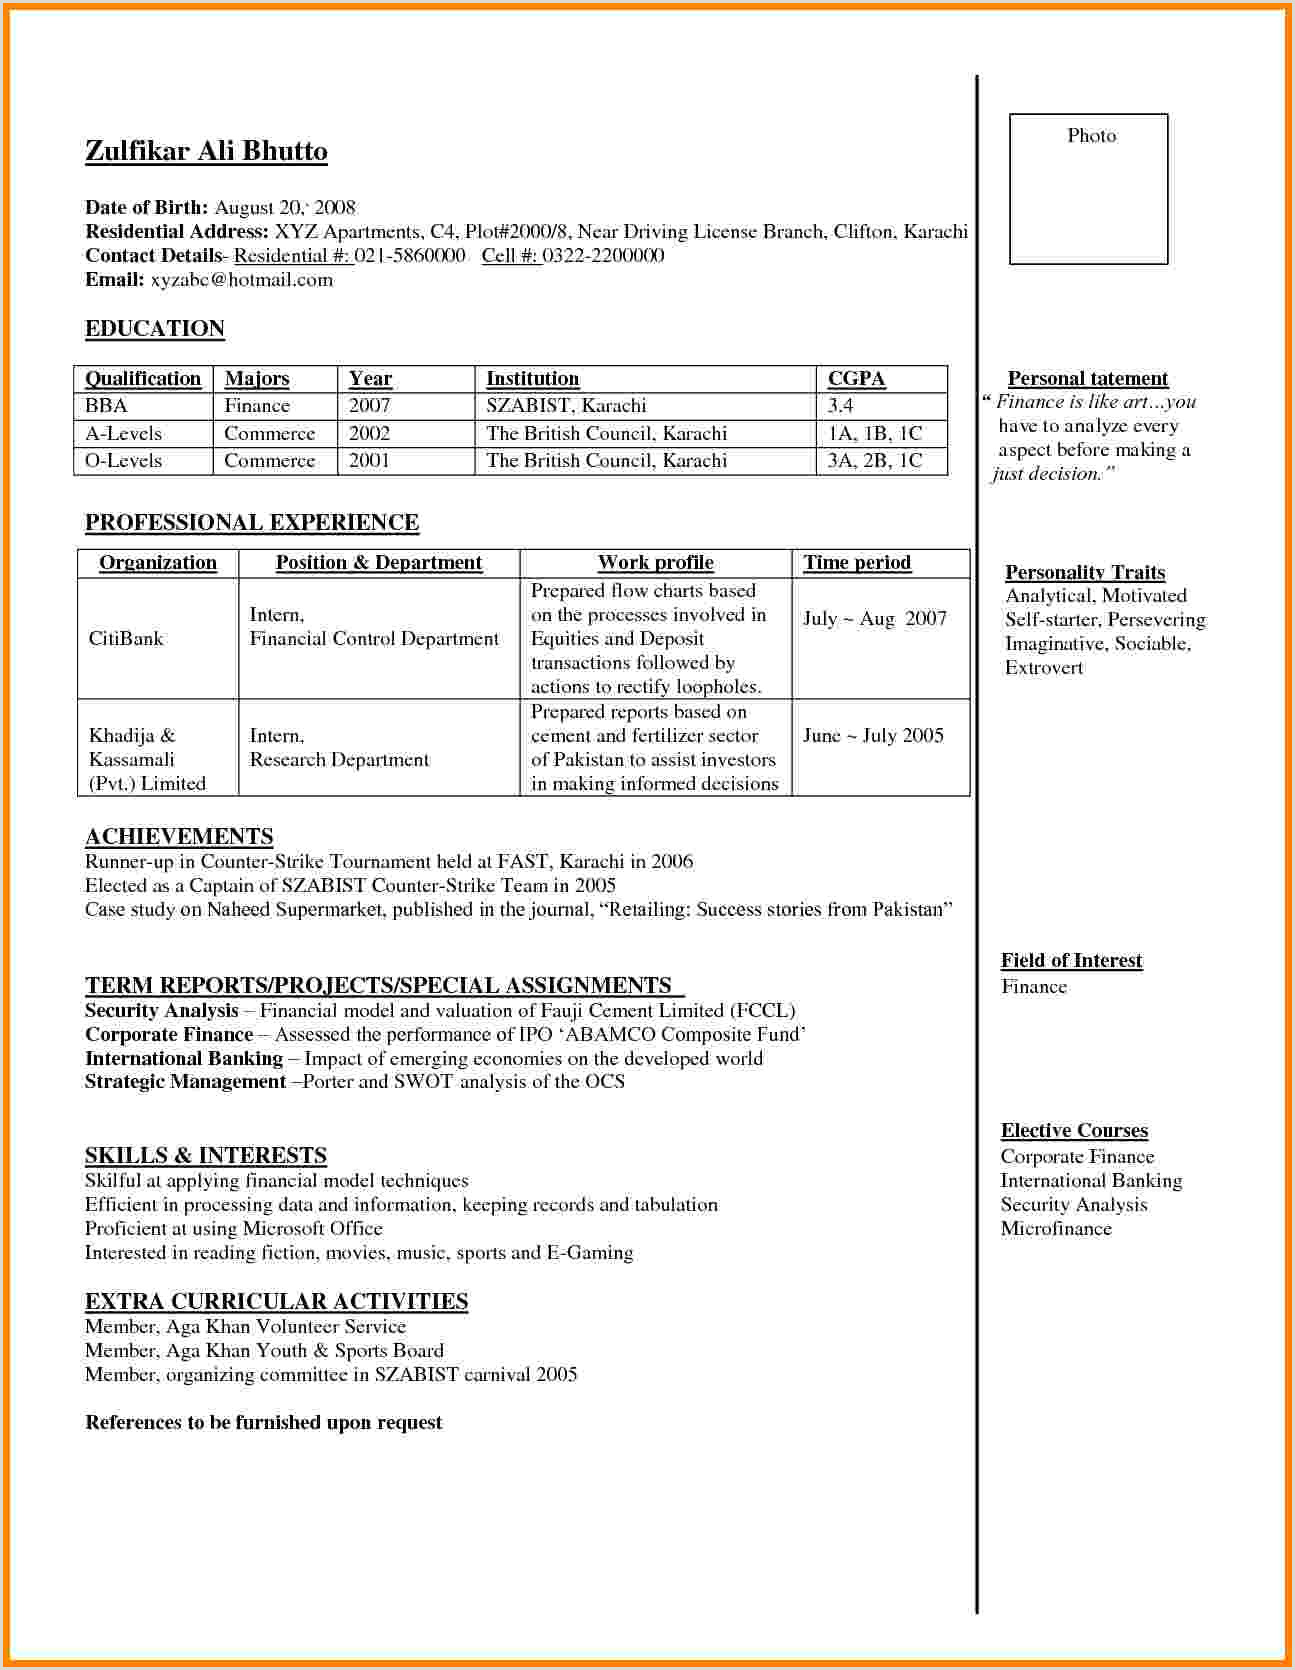 Fresher Cv Format Pakistan Resume Format For Bank Jobs Curriculum Vitae Banking Pdf